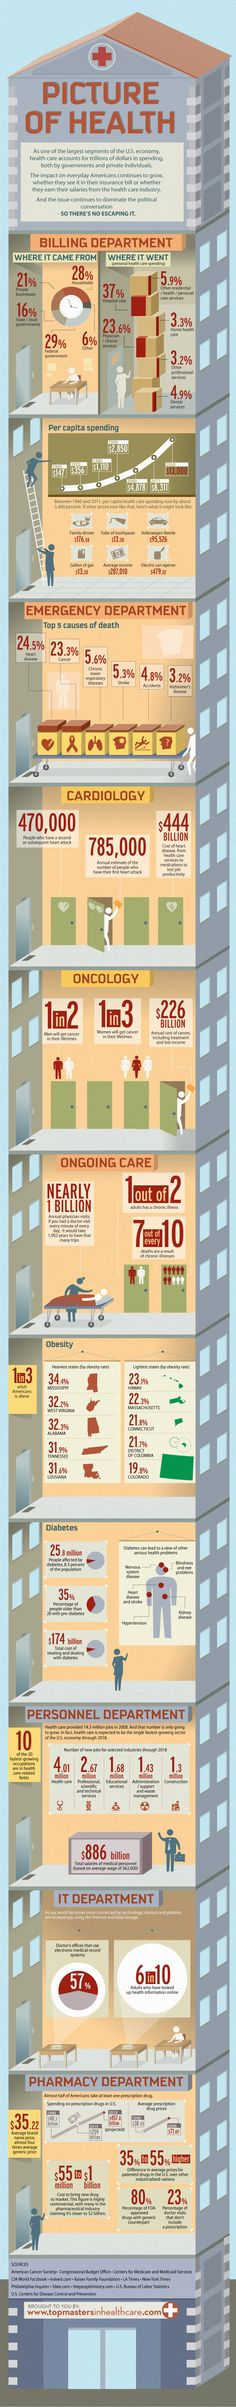 A Picture of Healthcare in America  http://www.businesspundit.com/a-picture-of-healthcare-in-america/ | Repinned by @darvin_williams